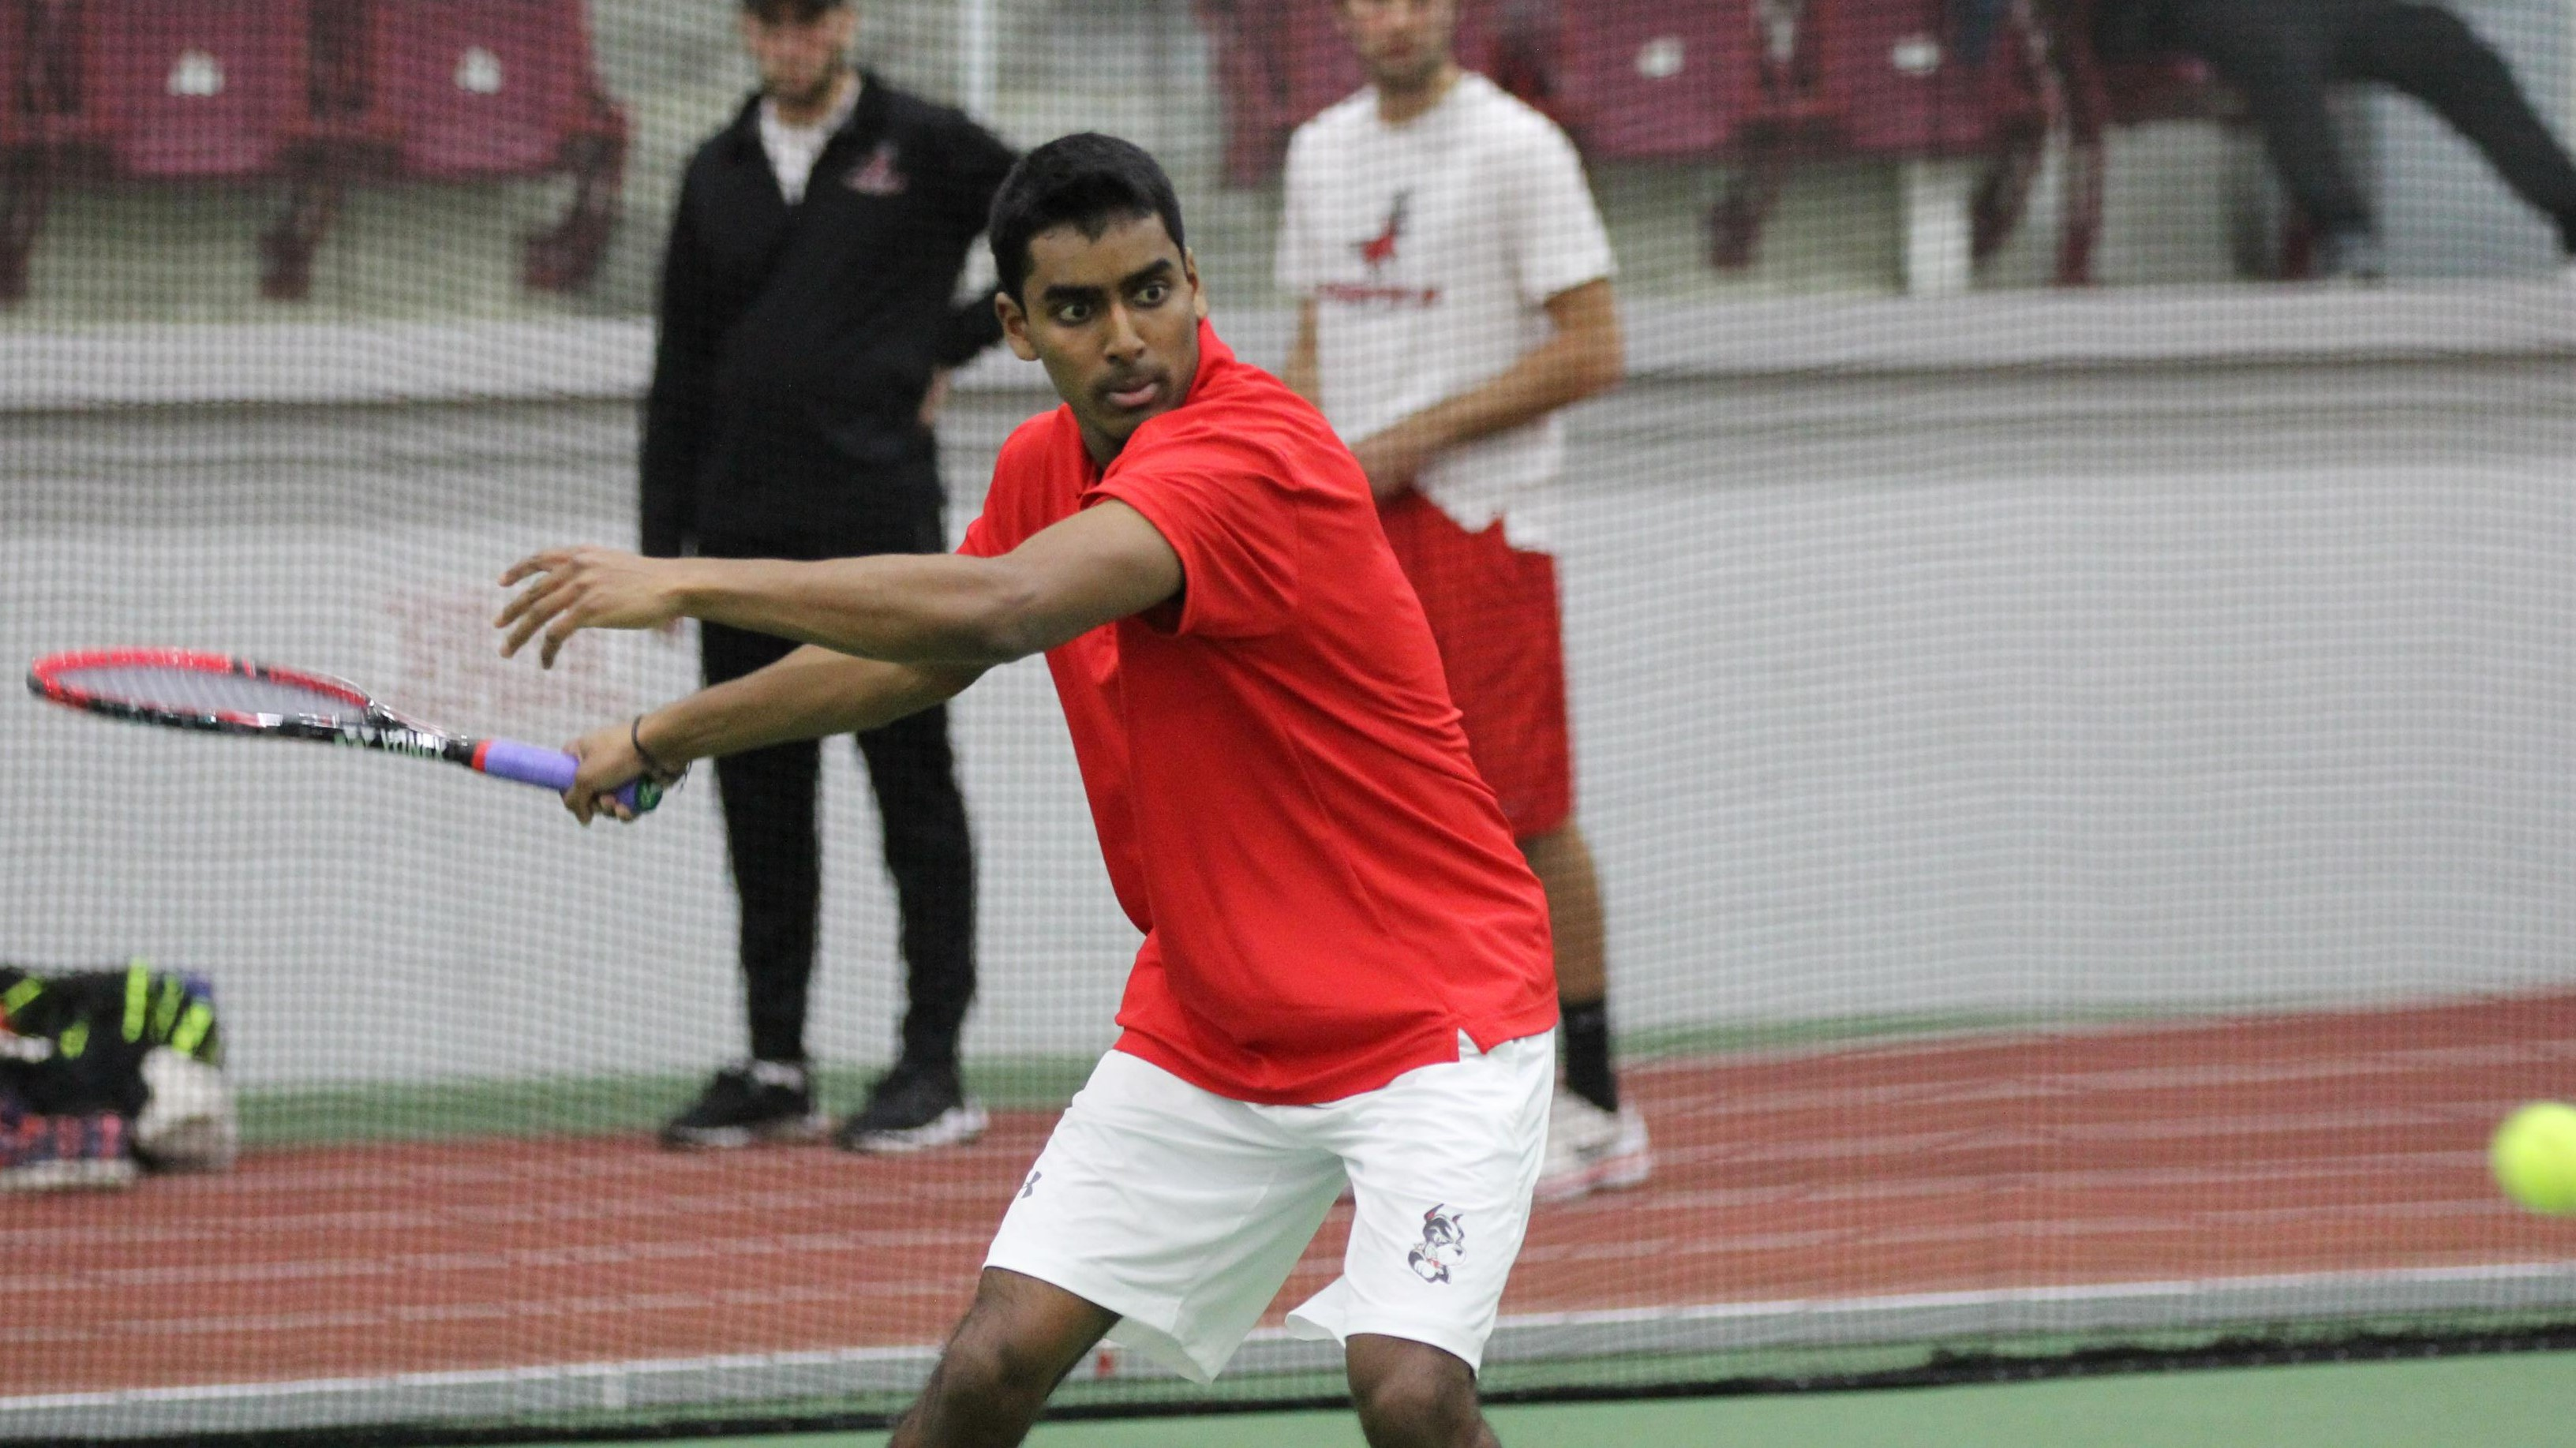 Satyajist Simhadri goes for the forehand